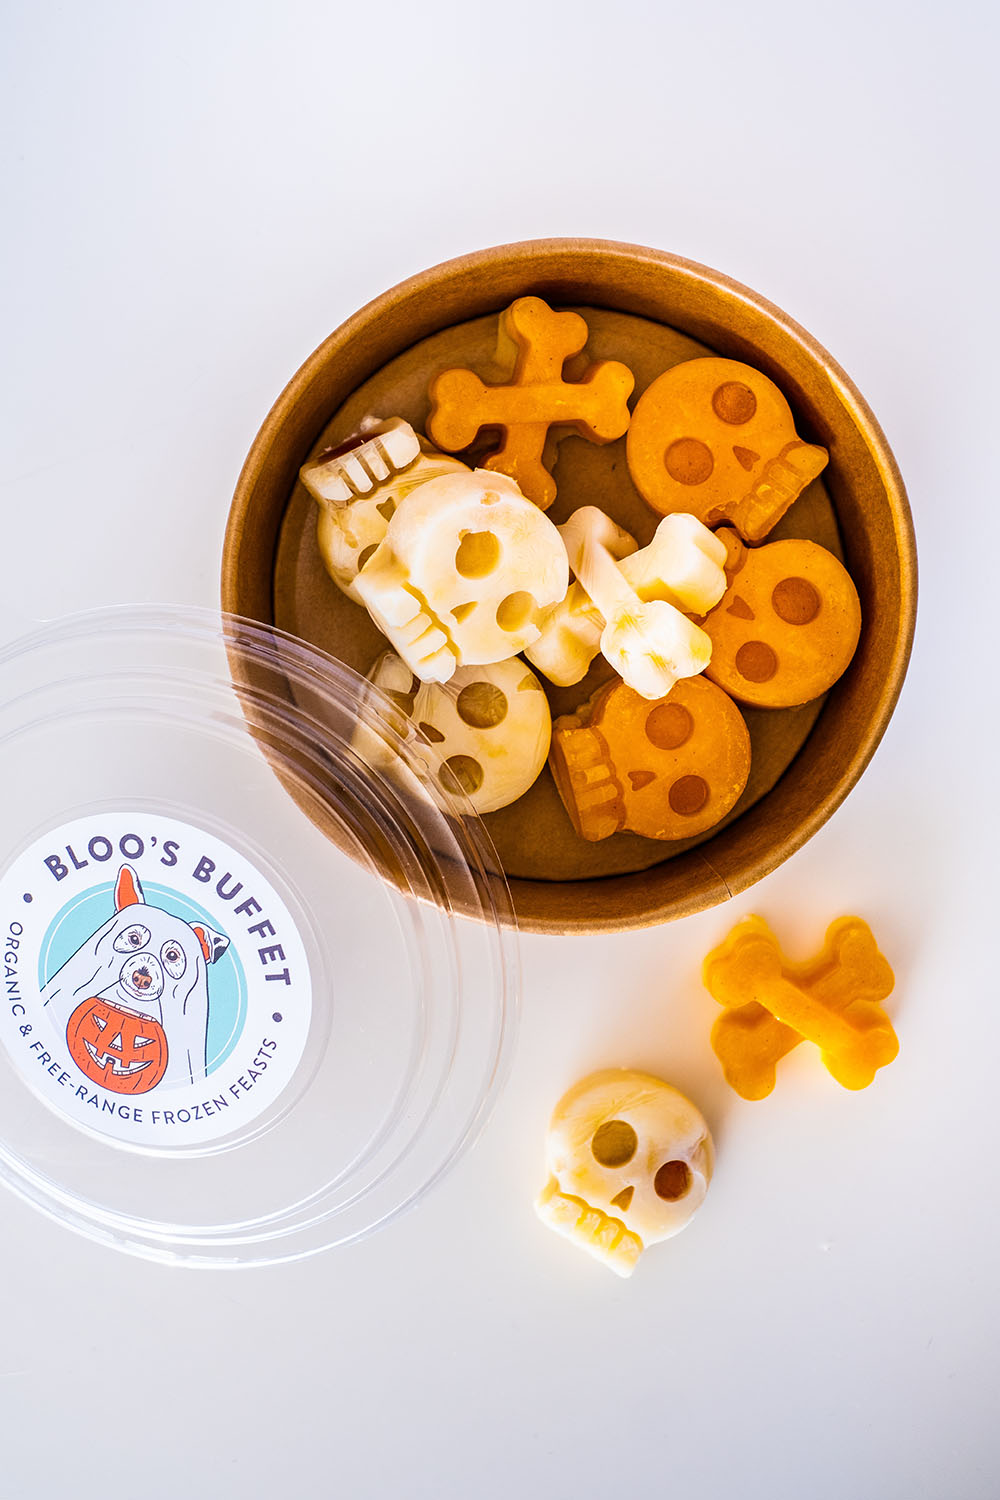 BloosBuffet berry Halloween container